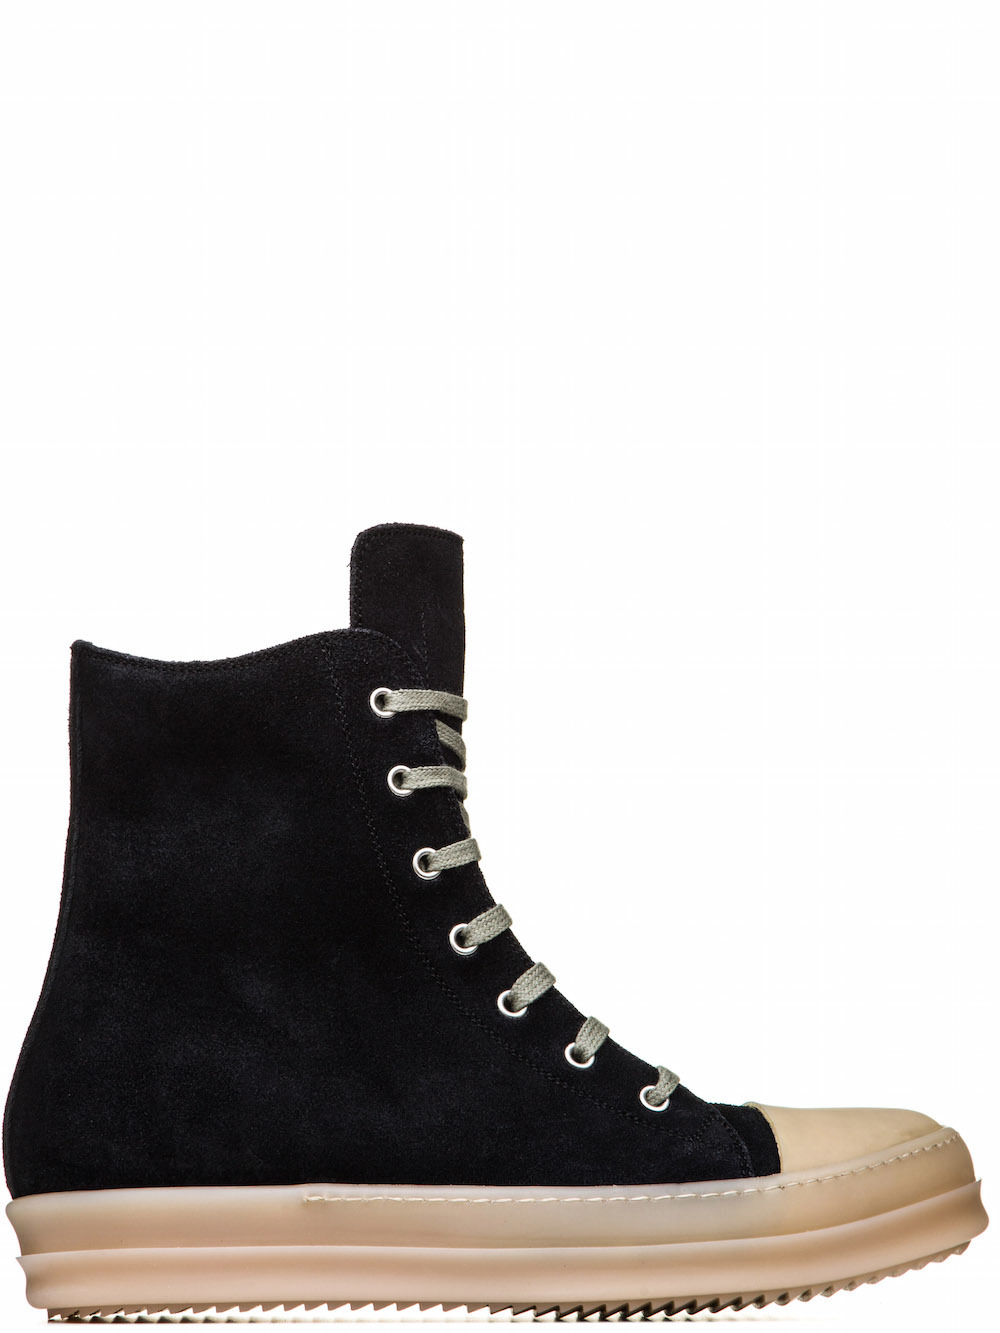 RICK OWENS RUBBER SNEAKERS IN FADED BLACK CALF LEATHER